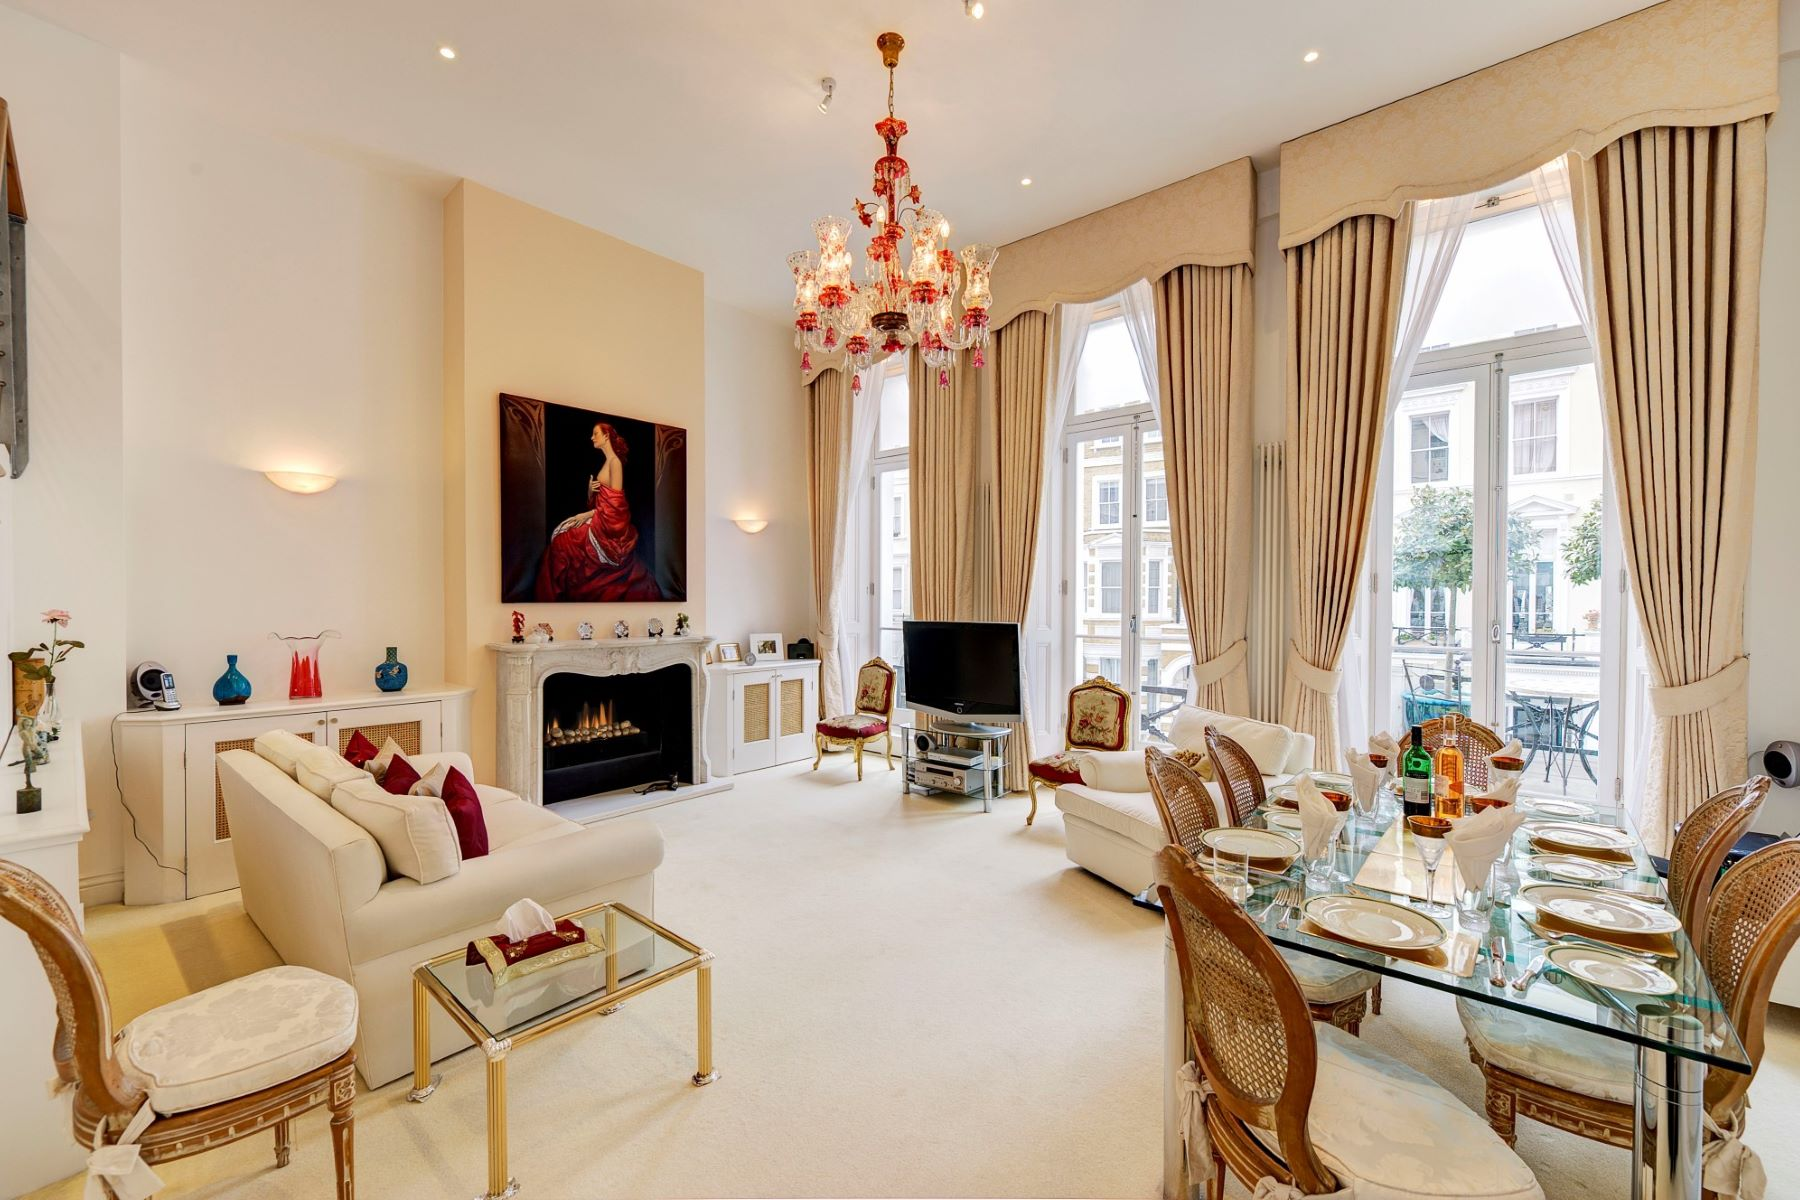 Apartment for Sale at Lexham Gardens, Kensington, London London, England, United Kingdom